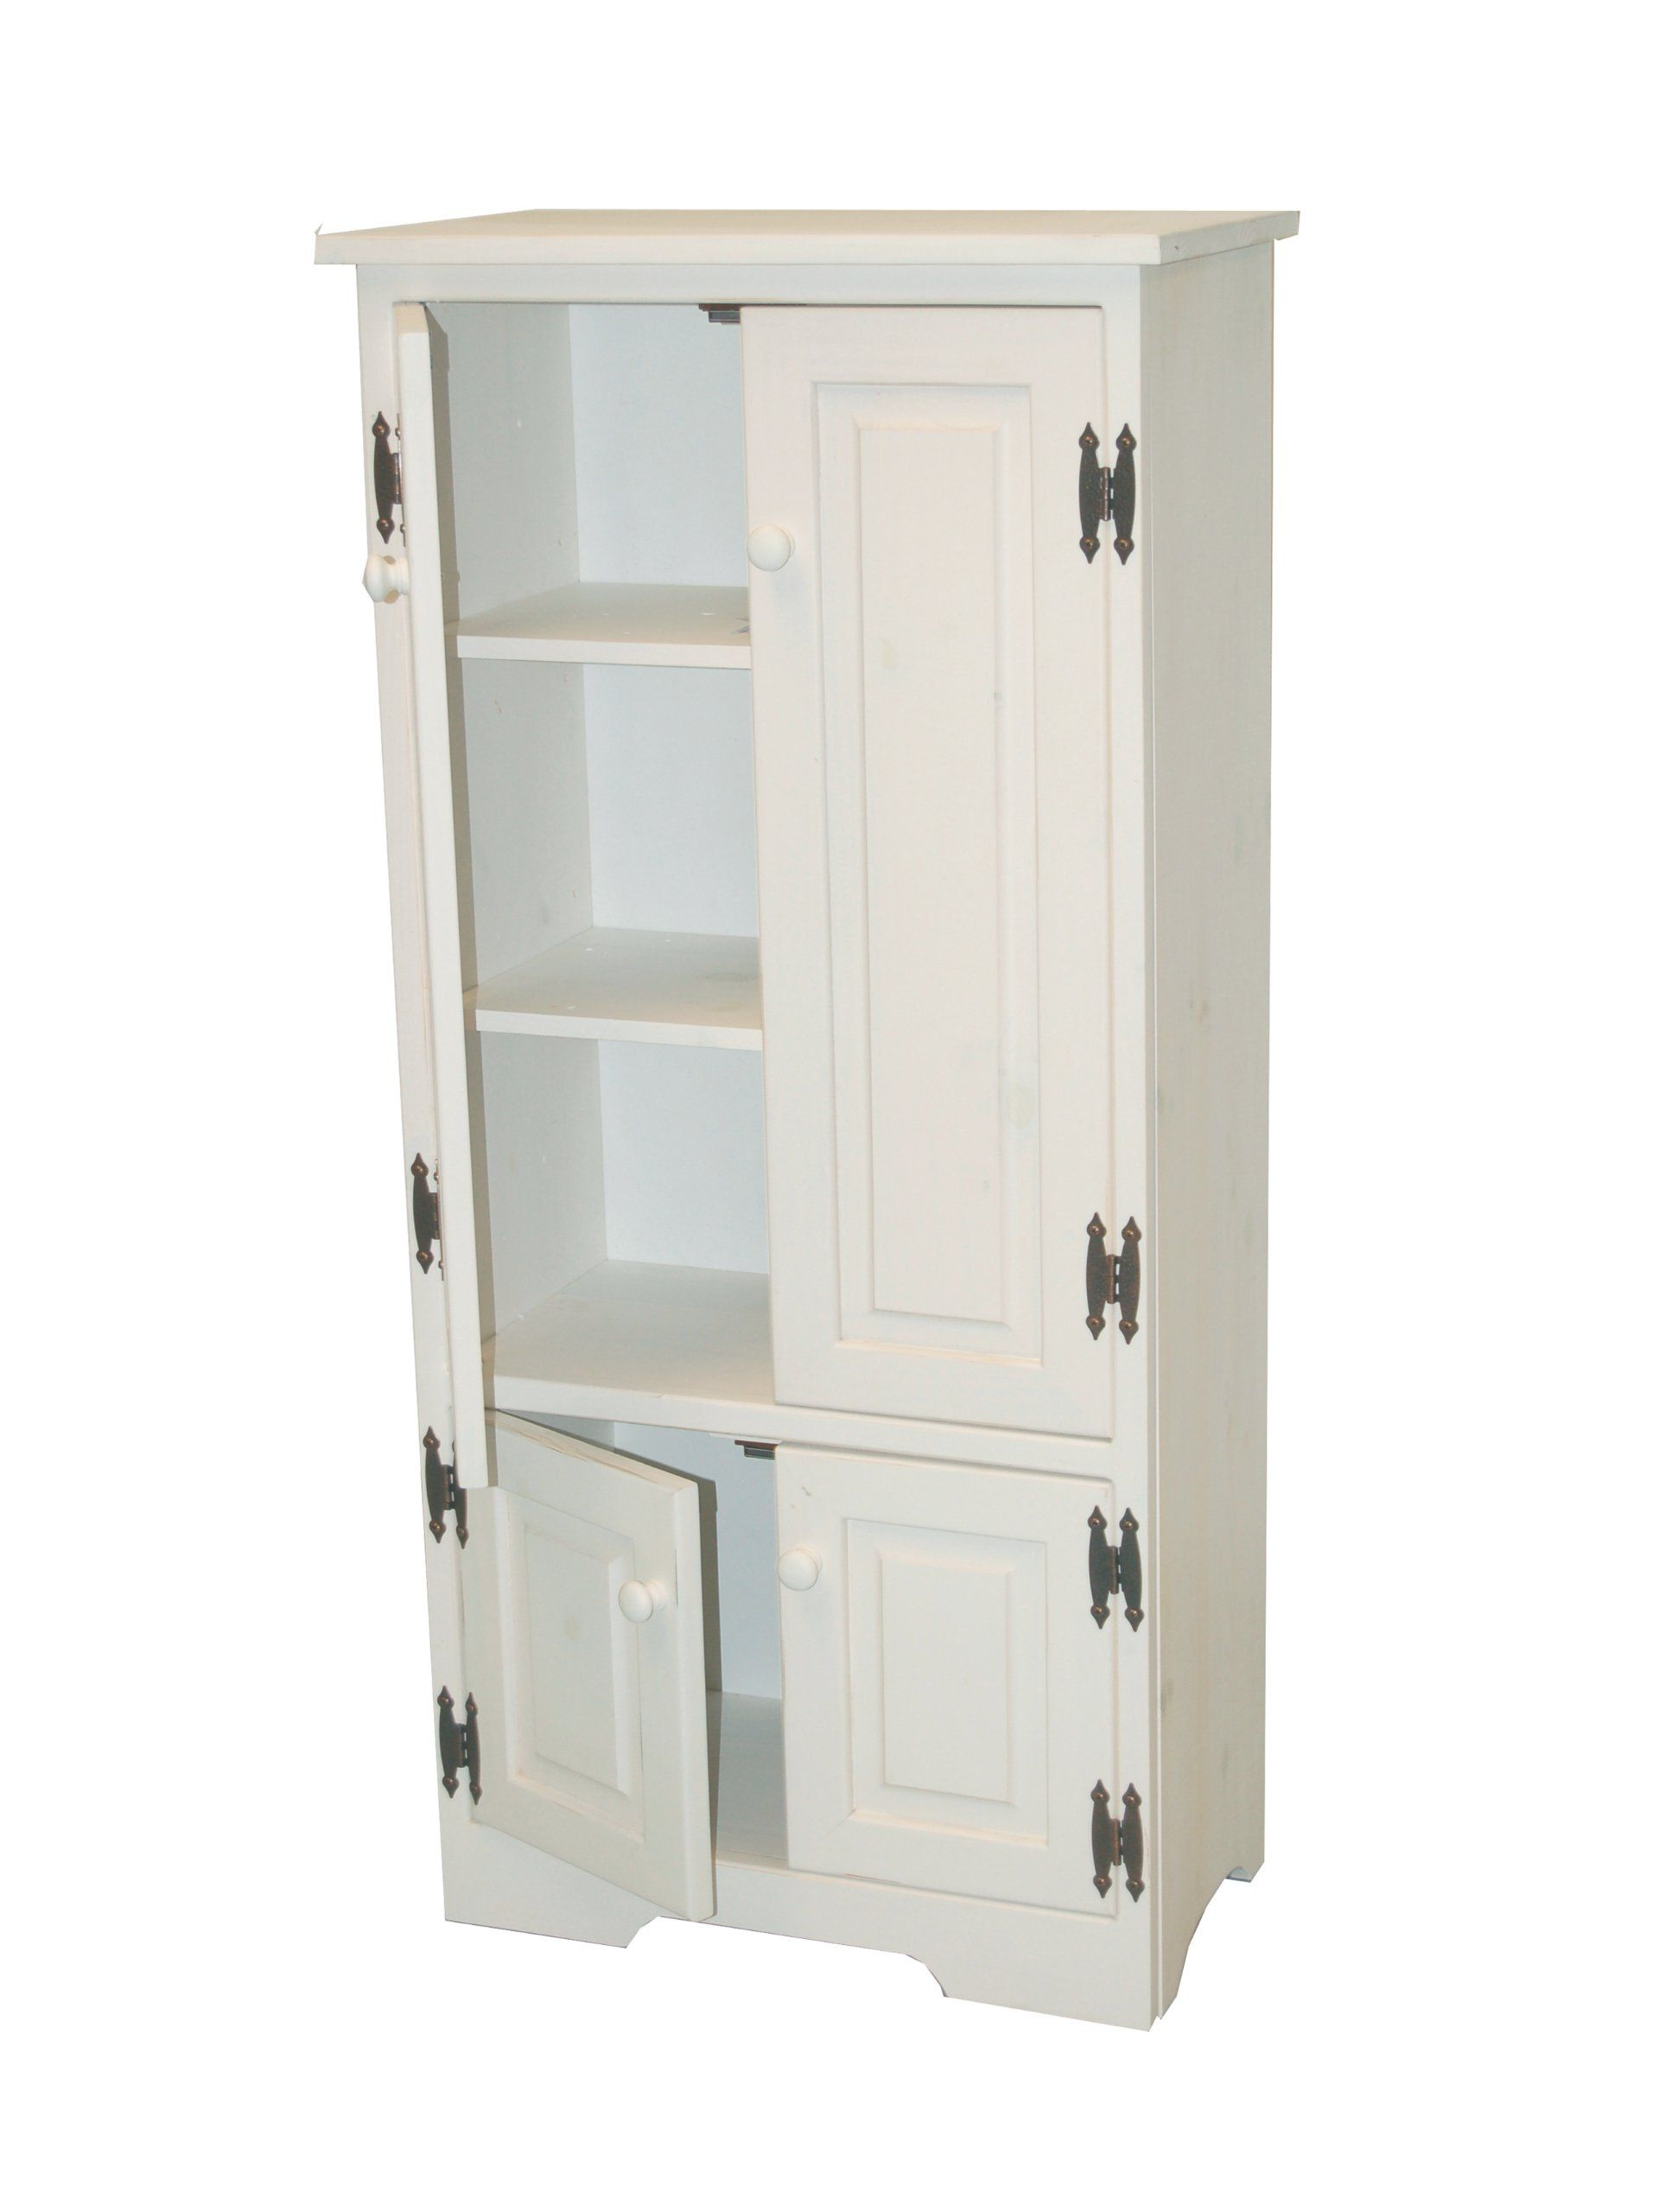 Amazon Com Tms Tall Cabinet White Free Standing Cabinets